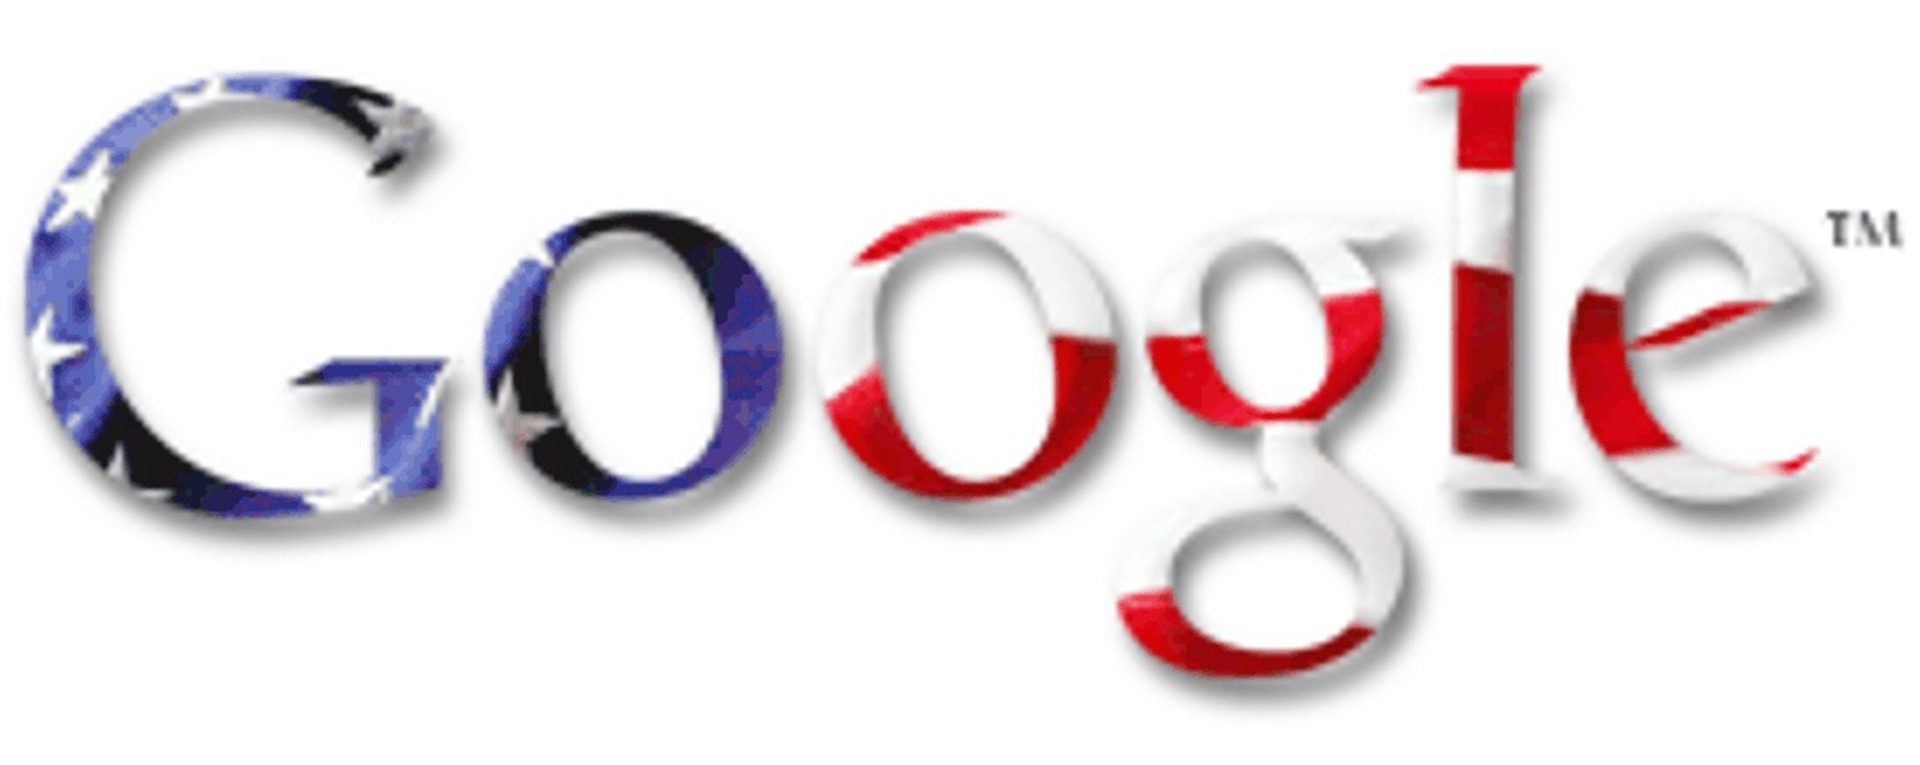 4th of July Google Doodle 2002